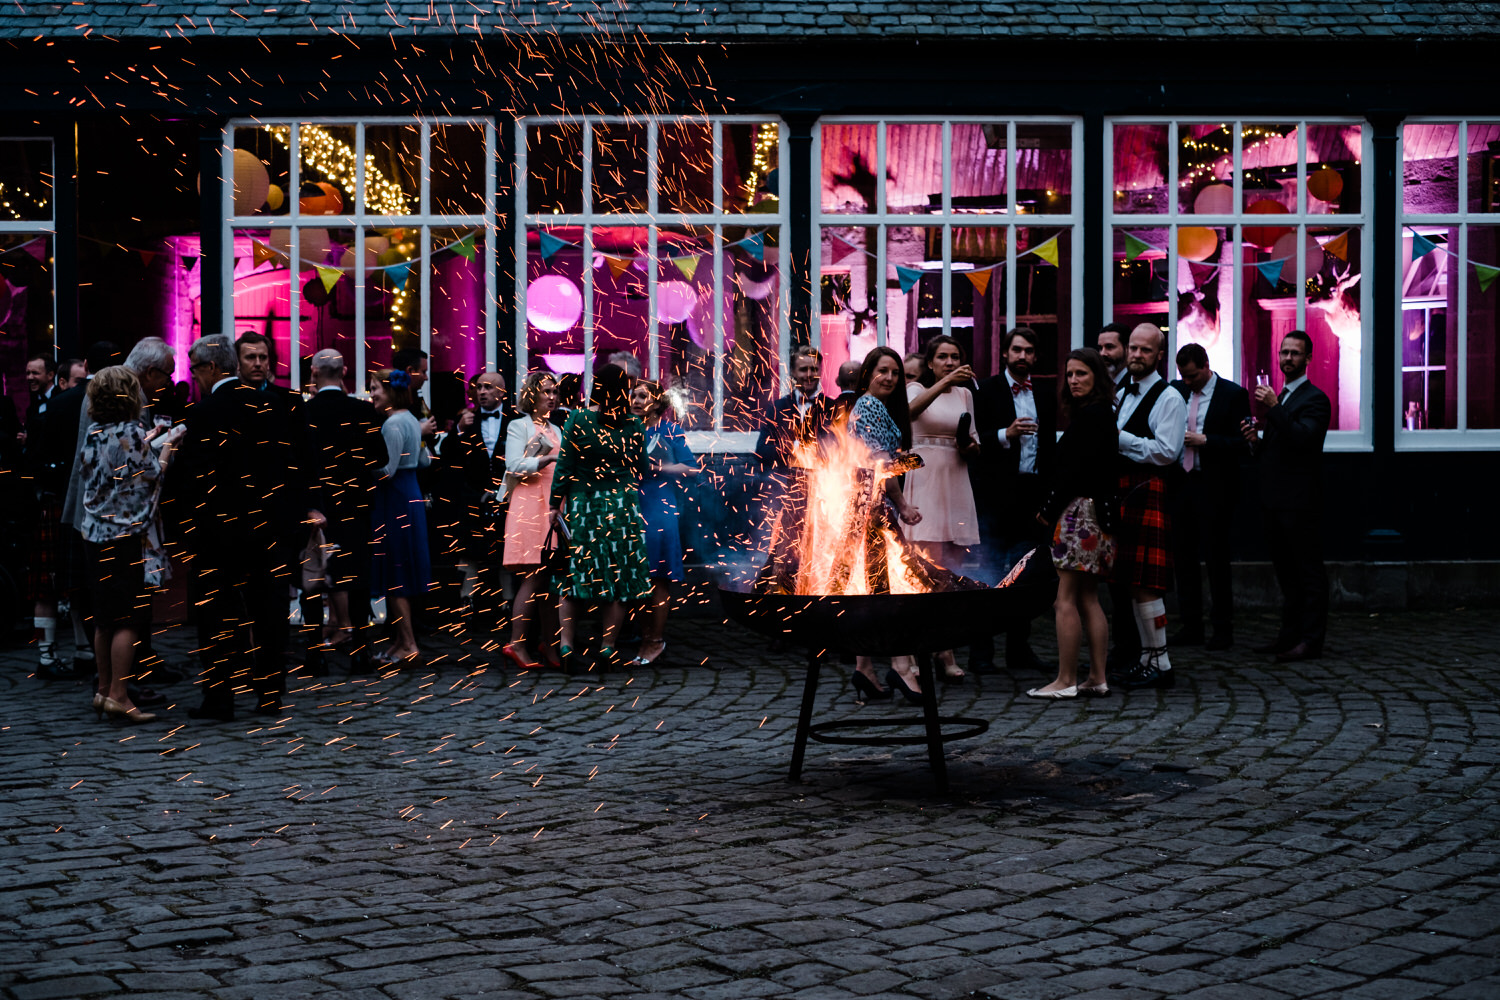 Guests look on at the sparking fire pit.